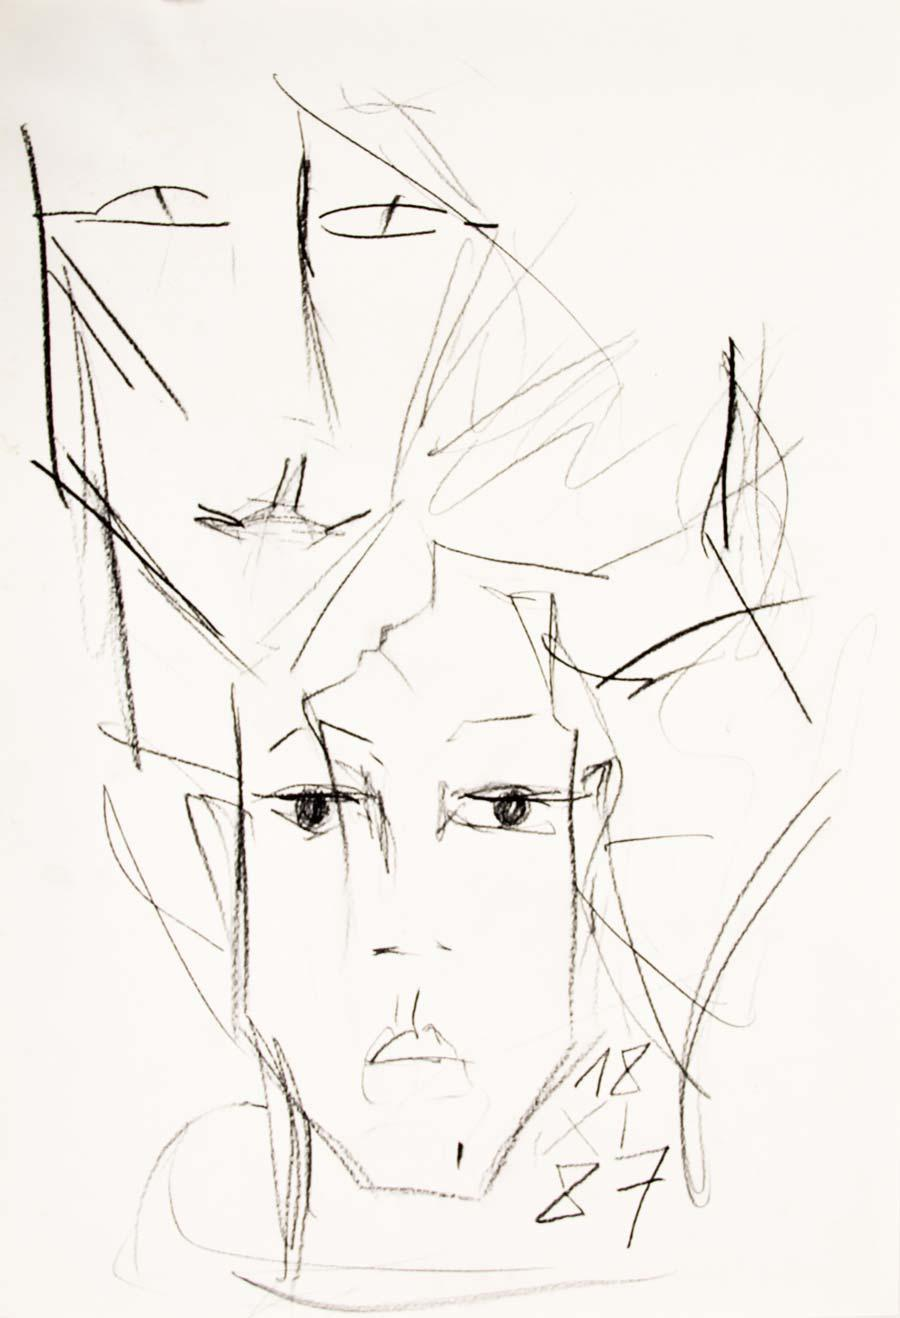 """18.XI.87"", 1987, 42x29,5cm, black chalk on paper"